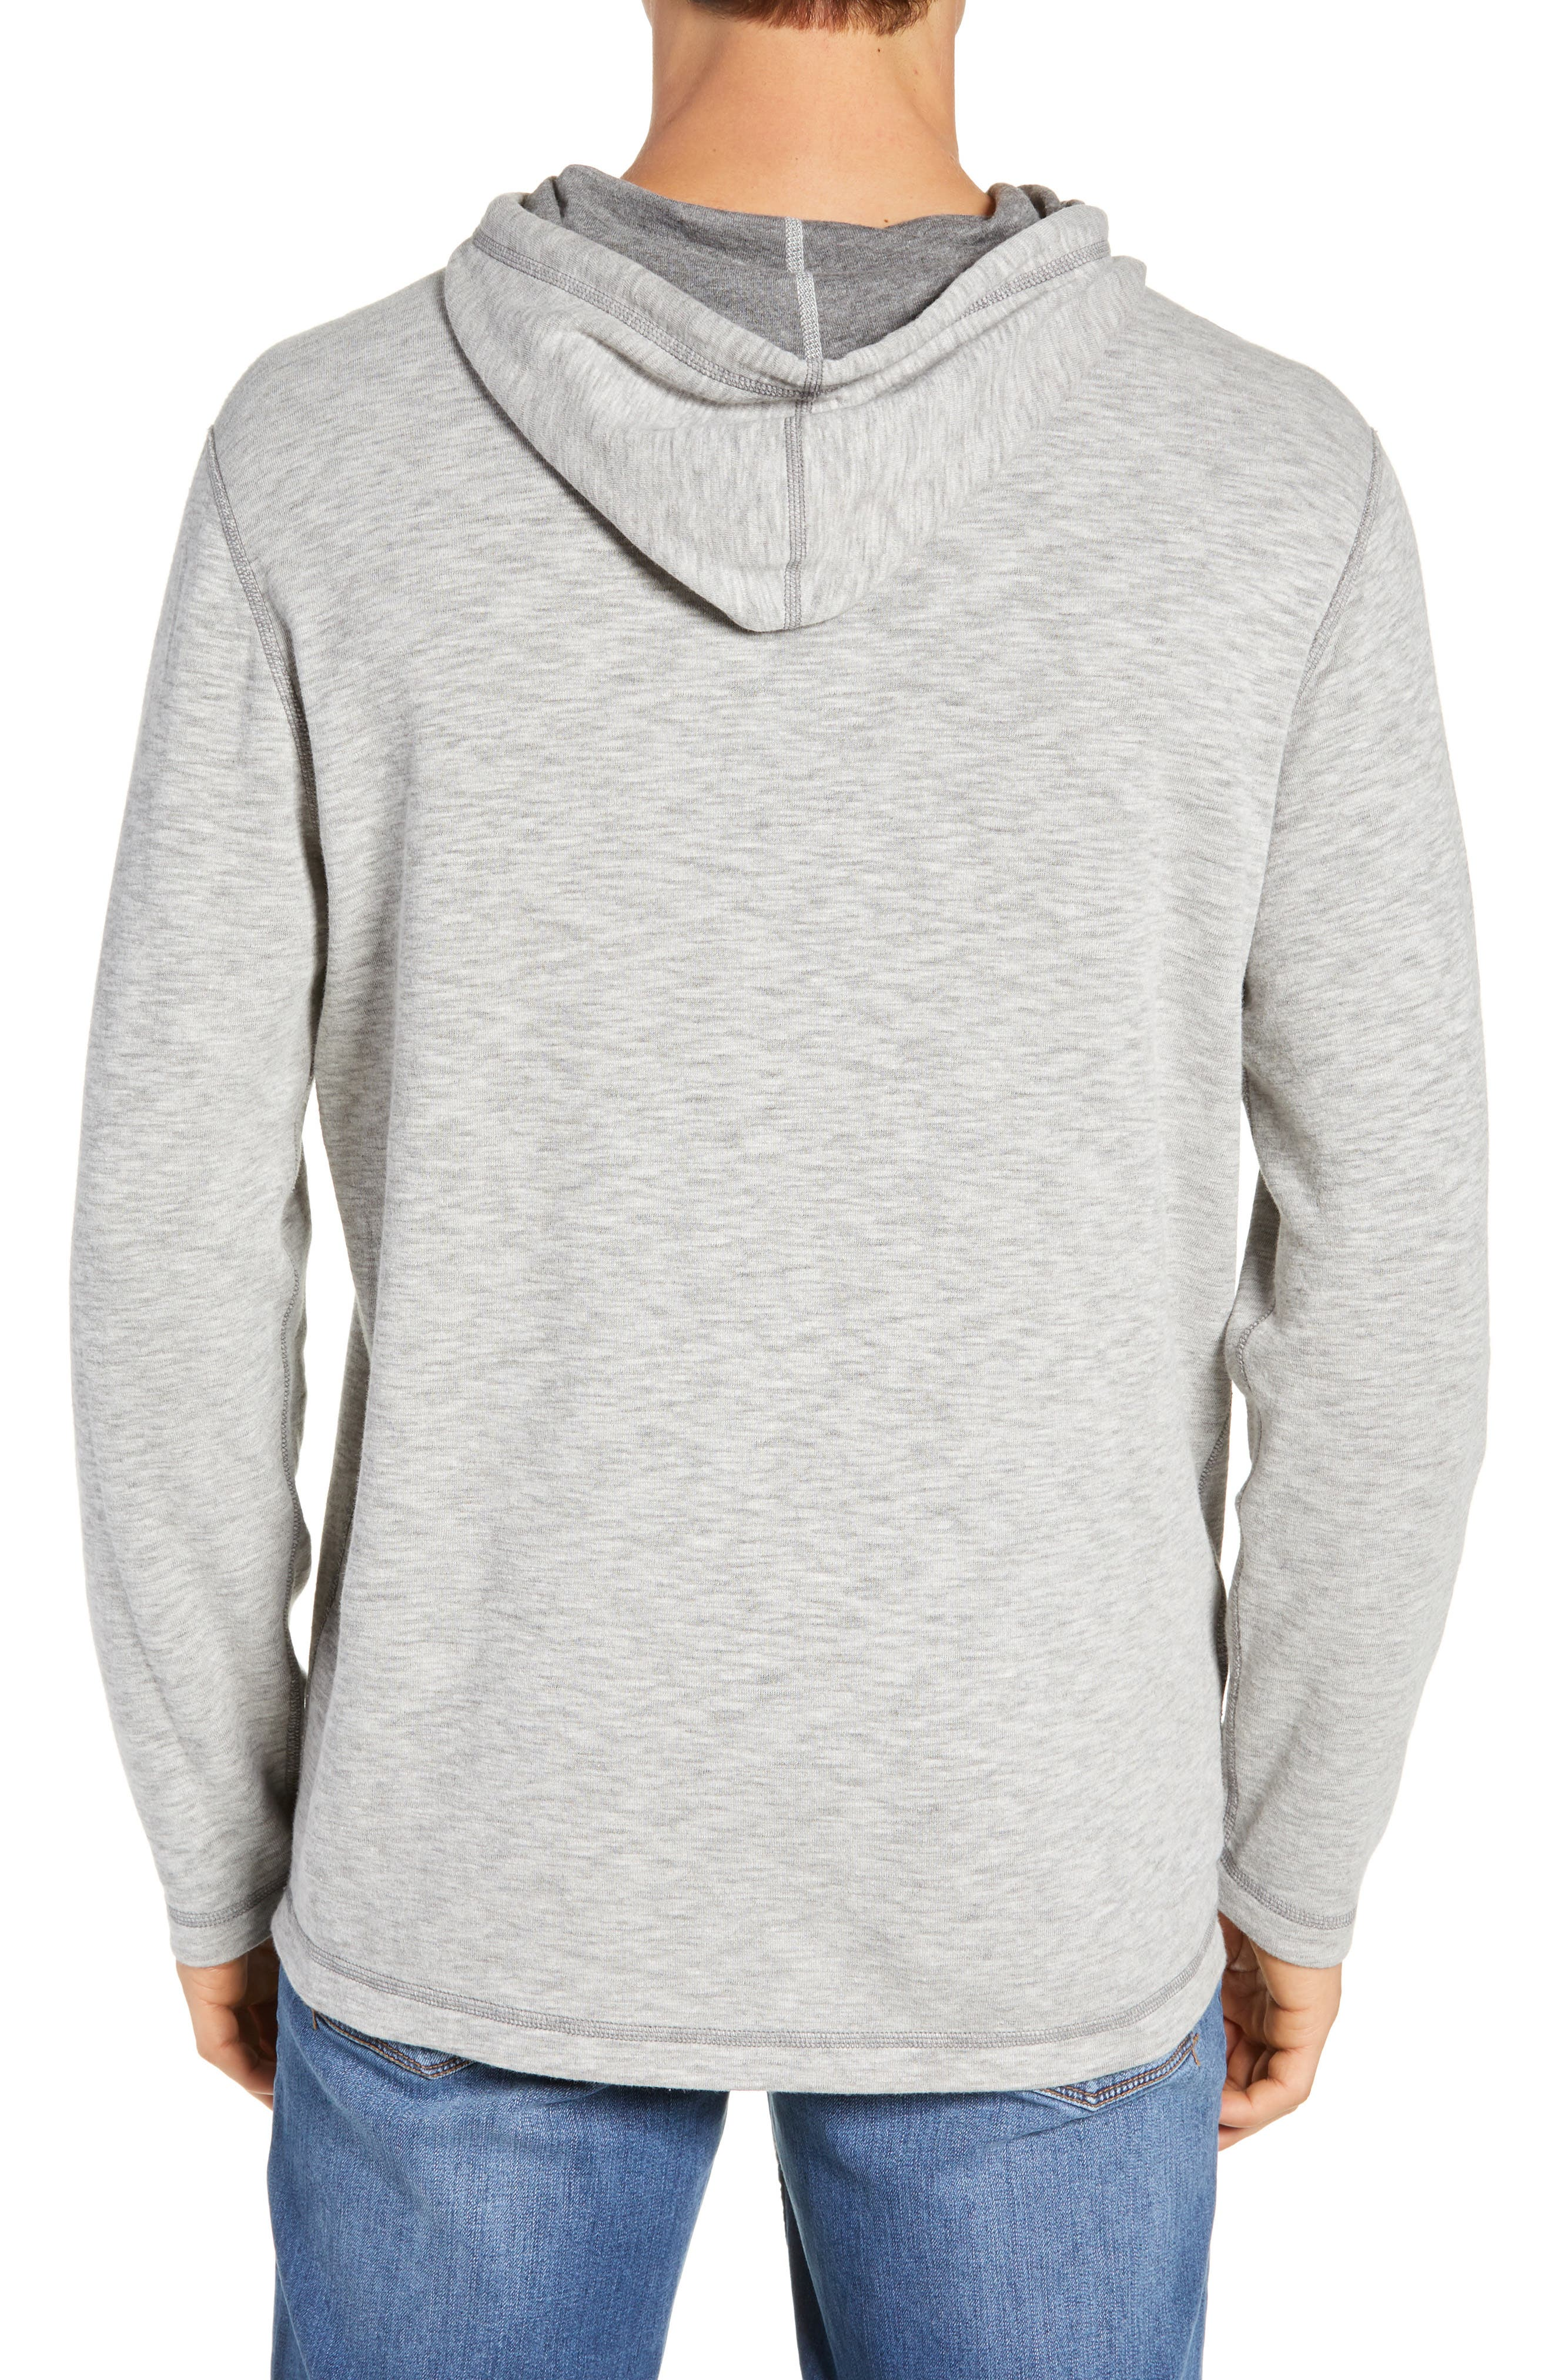 TOMMY BAHAMA, Sea Glass Classic Fit Reversible Hoodie, Alternate thumbnail 3, color, BLACK